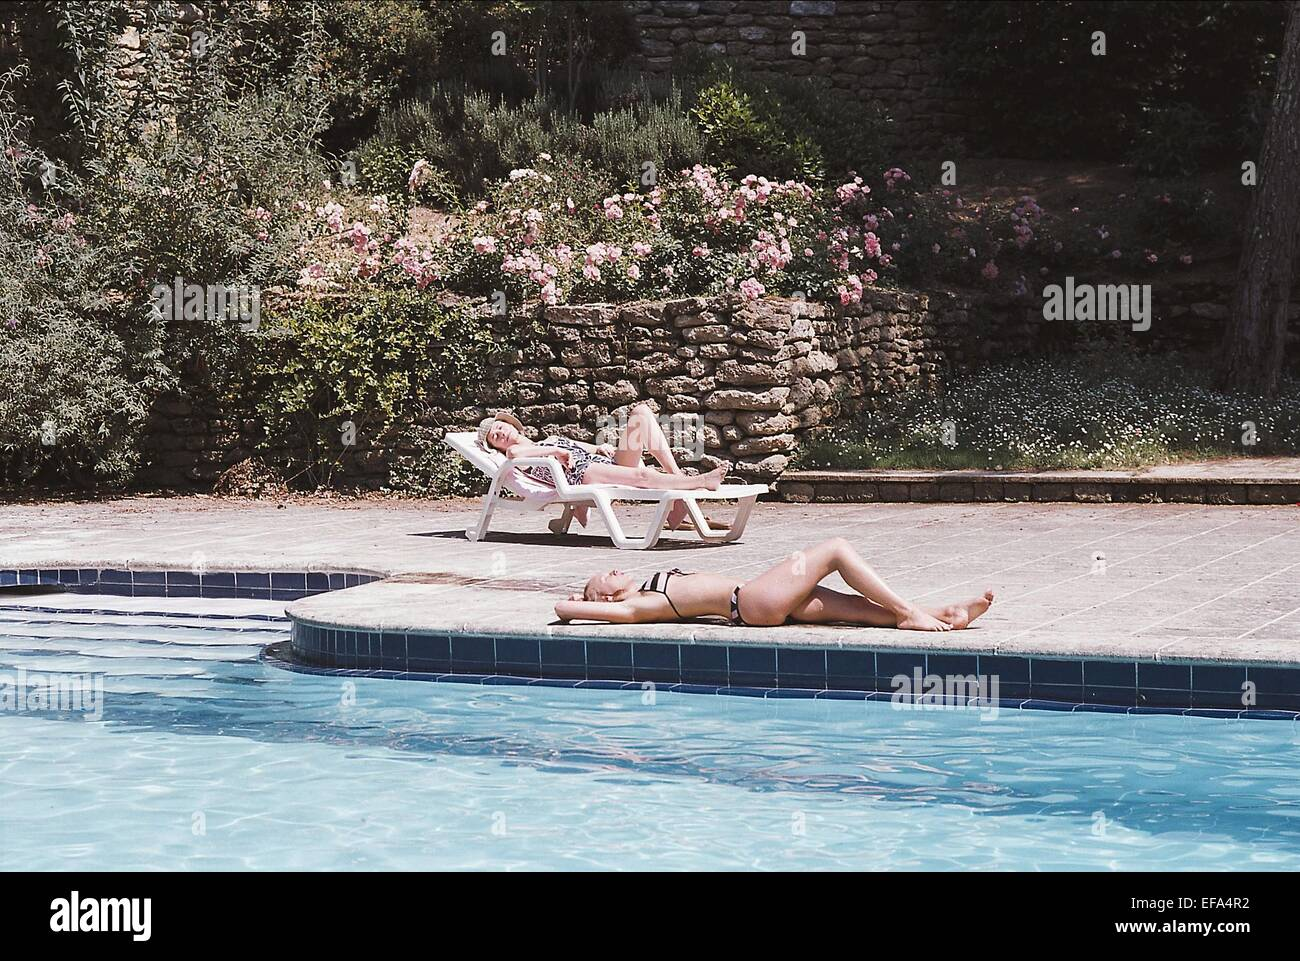 Charlotte rampling ludivine sagnier swimming pool 2003 stock photo royalty free image for Charlotte rampling the swimming pool